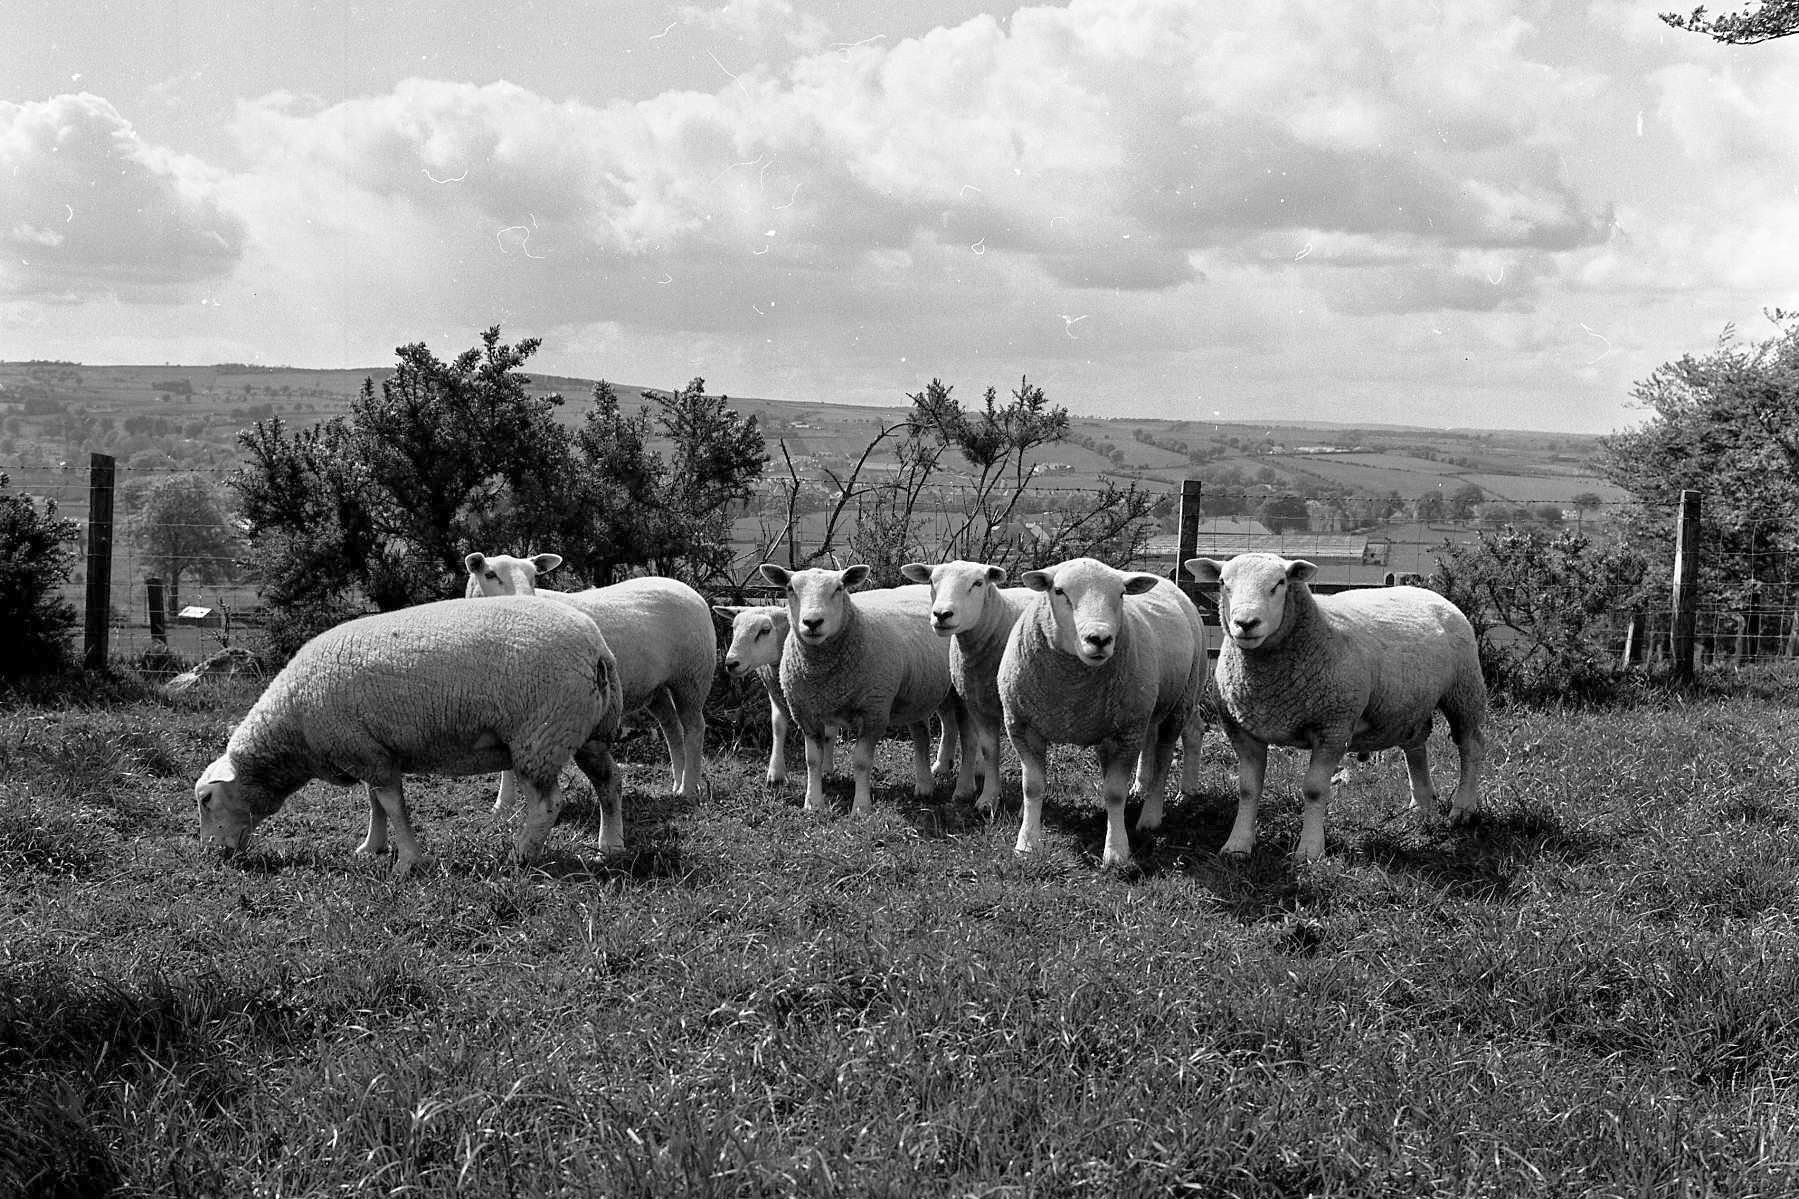 Texel sheep arrived in Scotland after a group of Lanarkshire farmers purchased 27 ewe hoggs and 13 rams in 1974. These were pictured at Jock McGregor's farm, near Lesmahagow